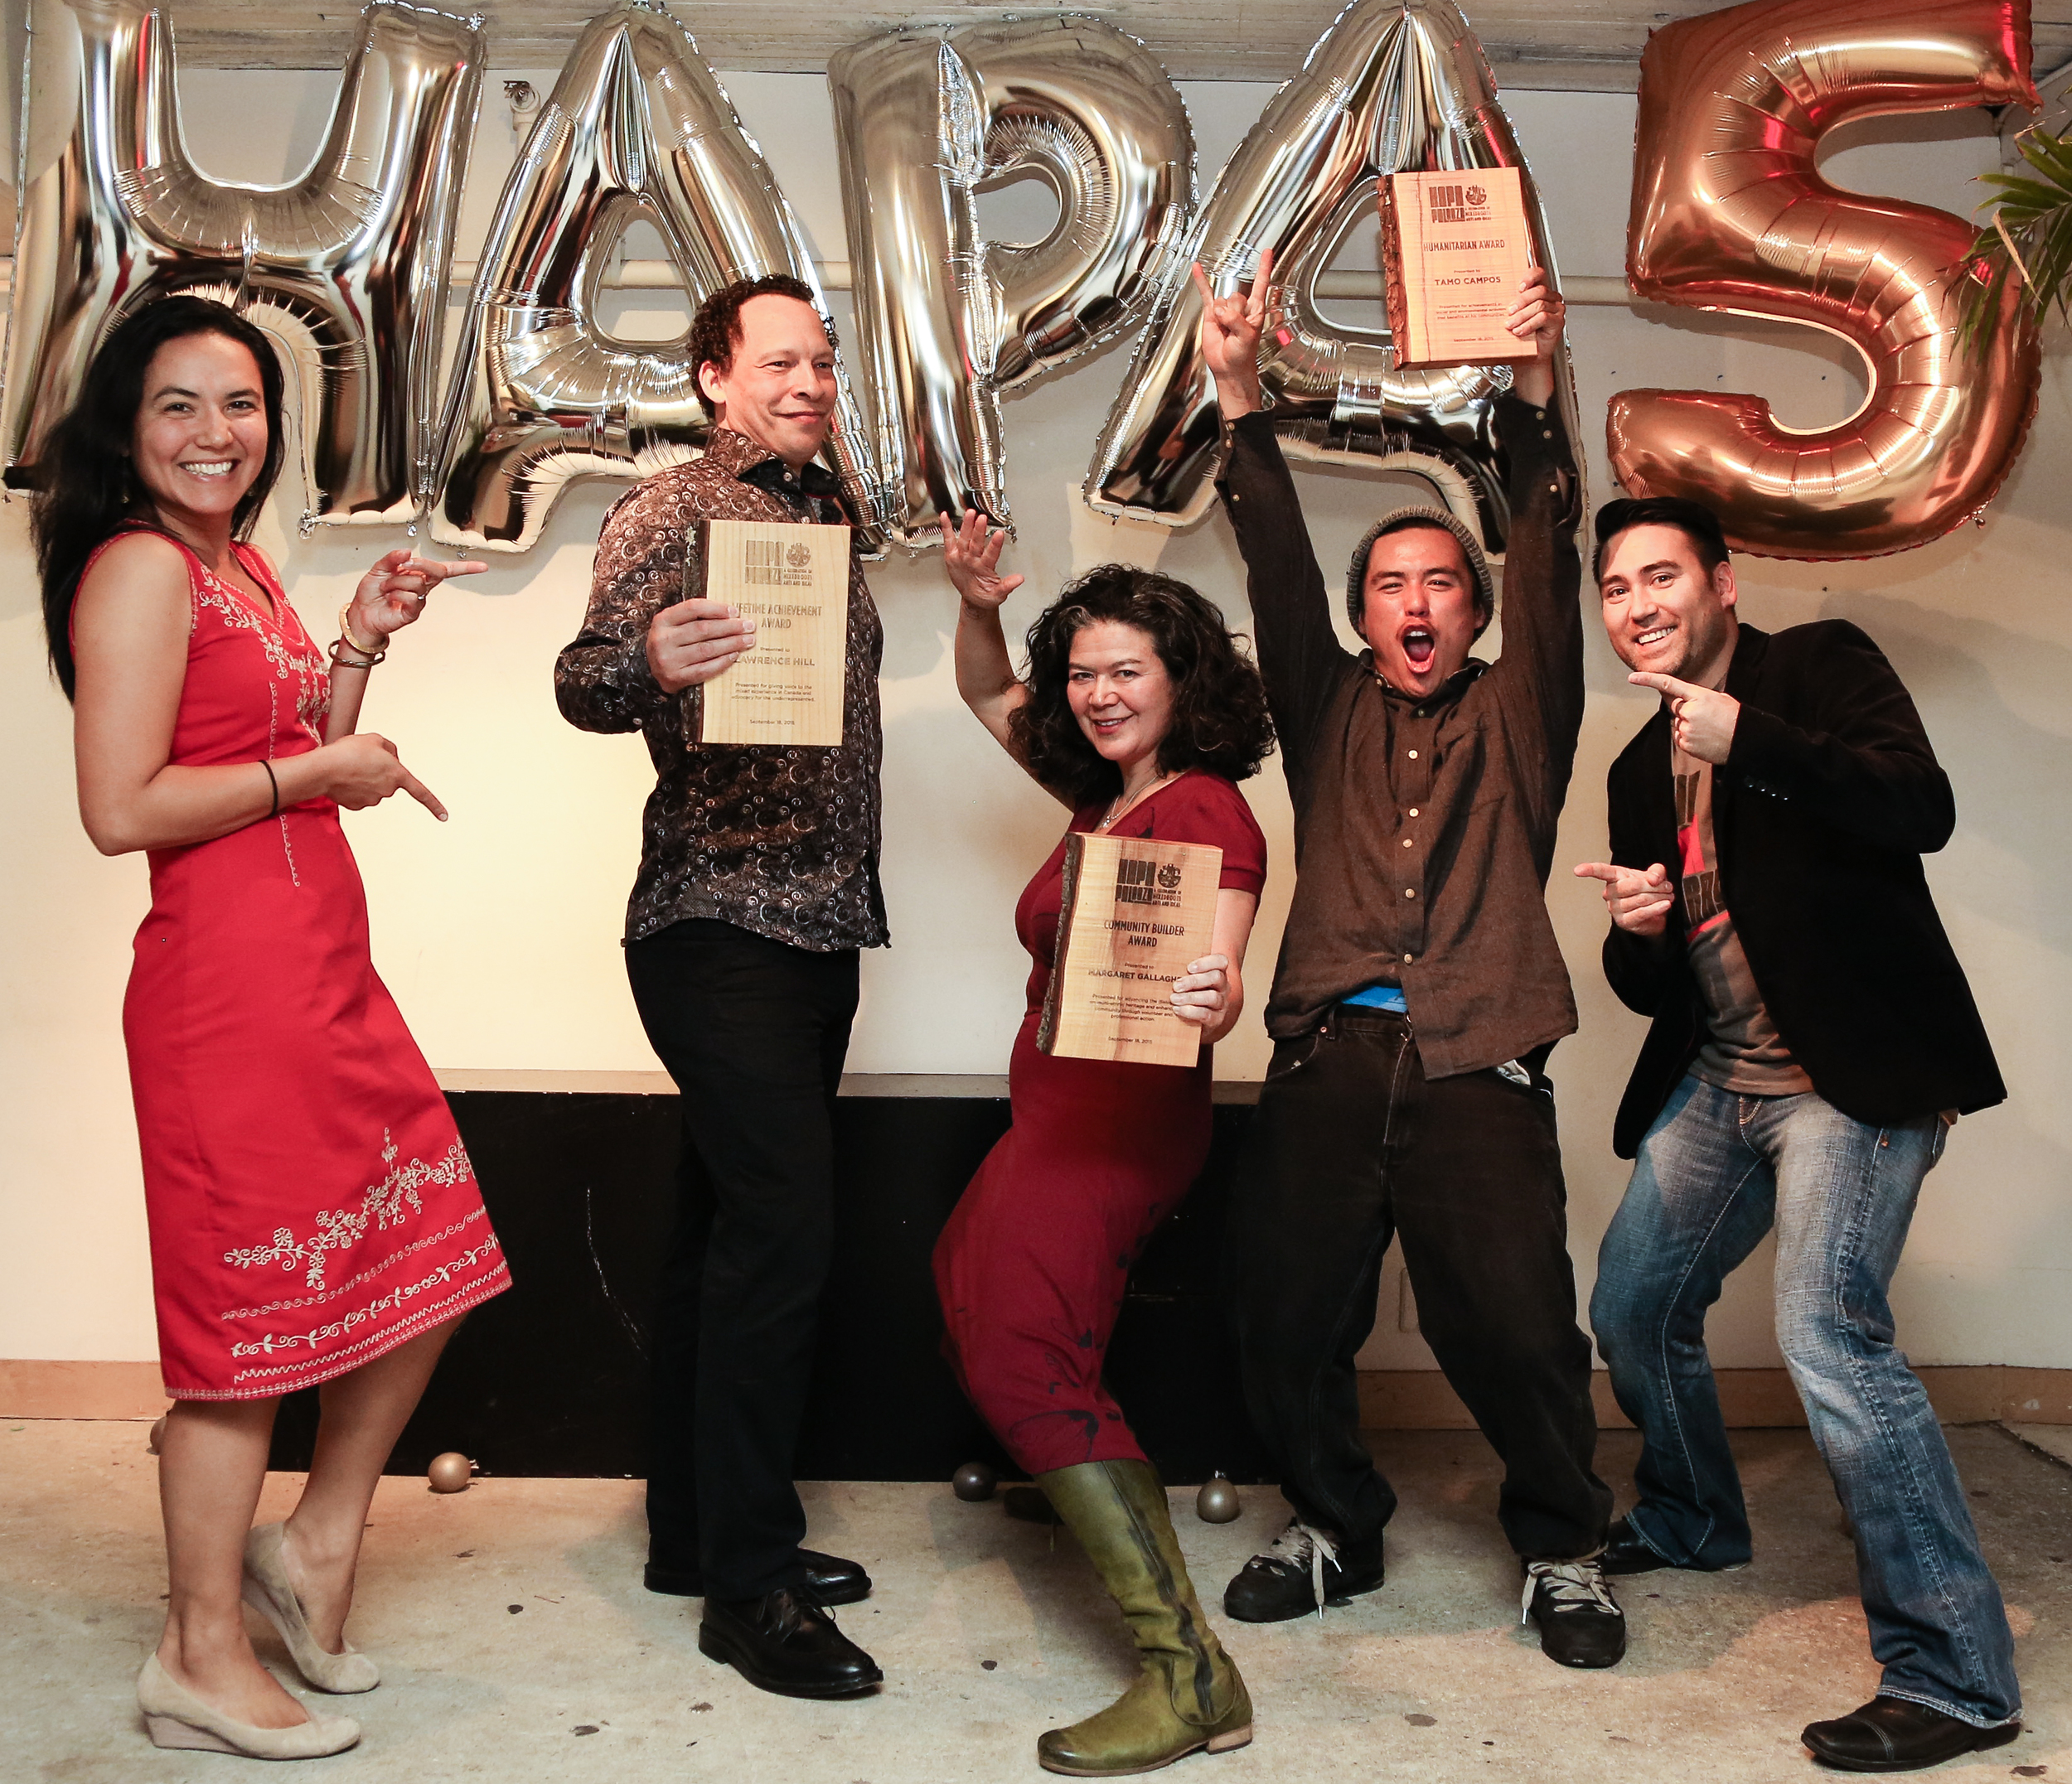 Festival founders Anna Kaye and Jeff Chiba Stearns flank Hapa-palooza's 2015 award recipients Lawrence Hill, Margaret Gallagher and Tamo Campos. Congratulations to the award winners on their many achievements!